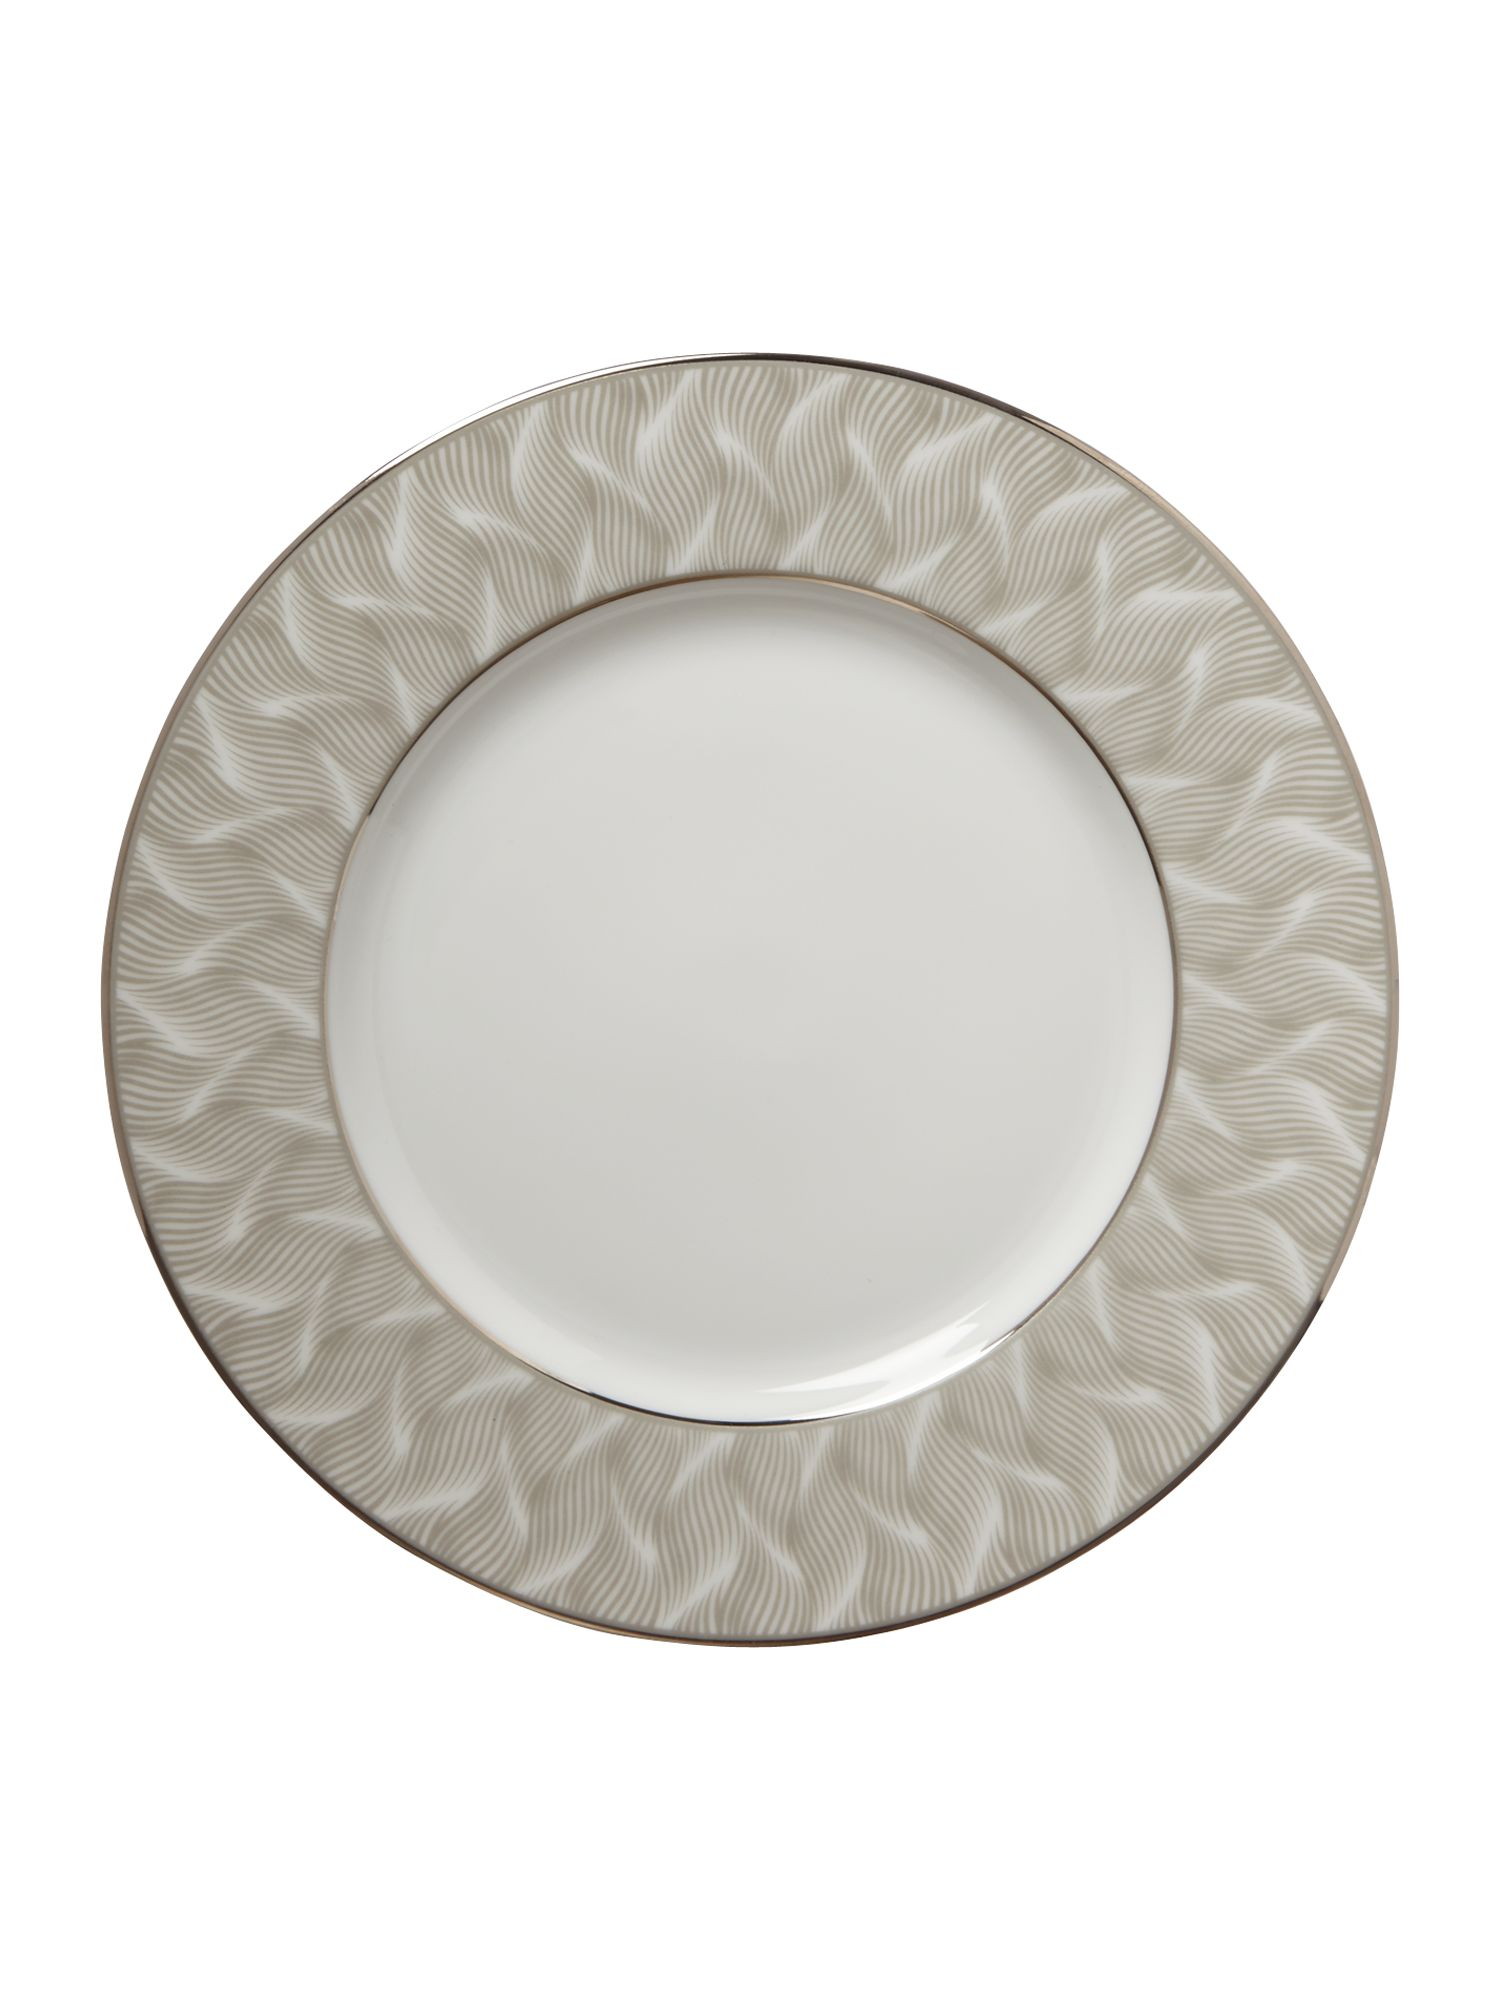 Nisha side plate